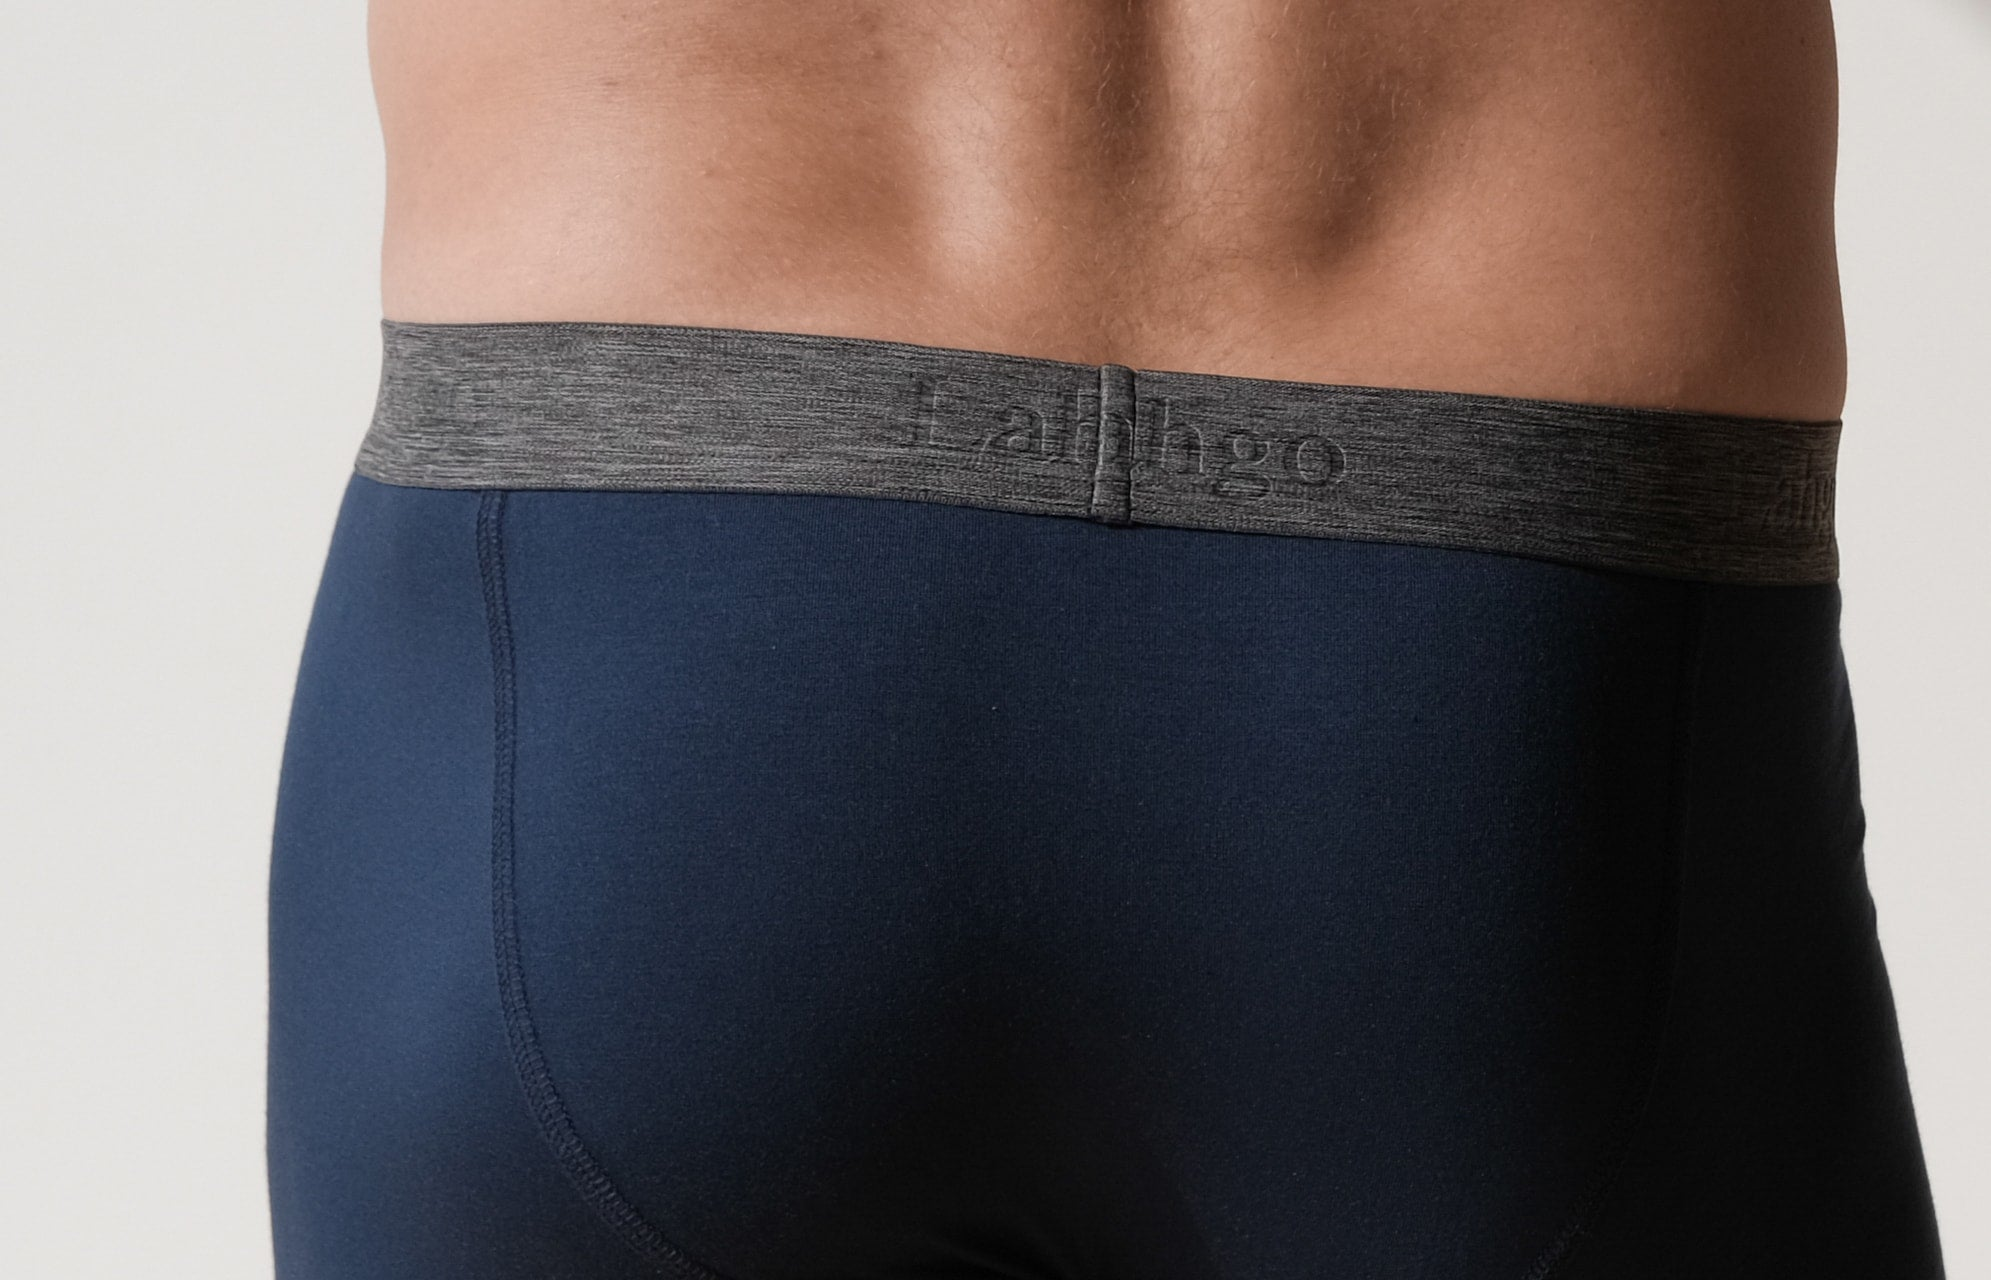 Supportive Modal Boxer Brief